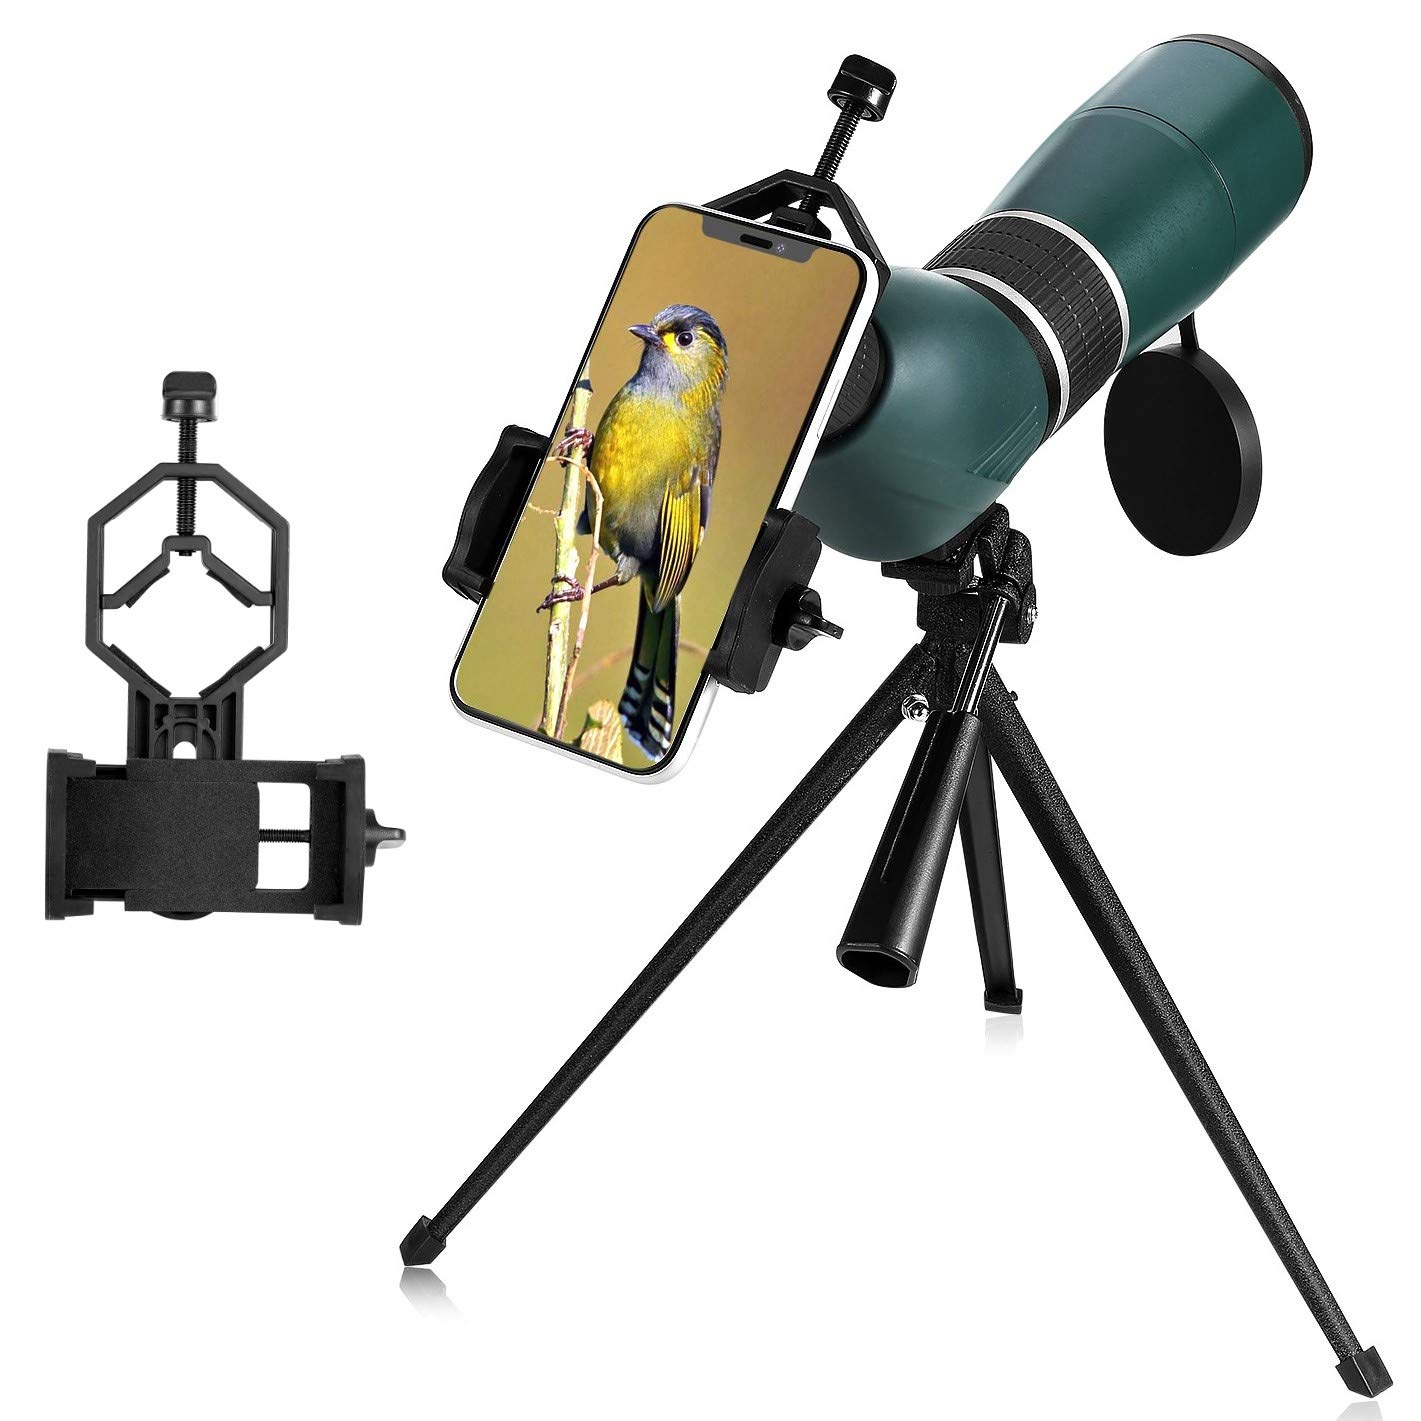 MaxUSee 20-60x60 Zoom HD Spotting Scope with Tripod, Carrying Bag and Phone Adapter, BAK4 Prism Full Multi-Coated Lens for Target Shooting Hunting Bird Watching Wildlife Scenery Moon Viewing by MaxUSee